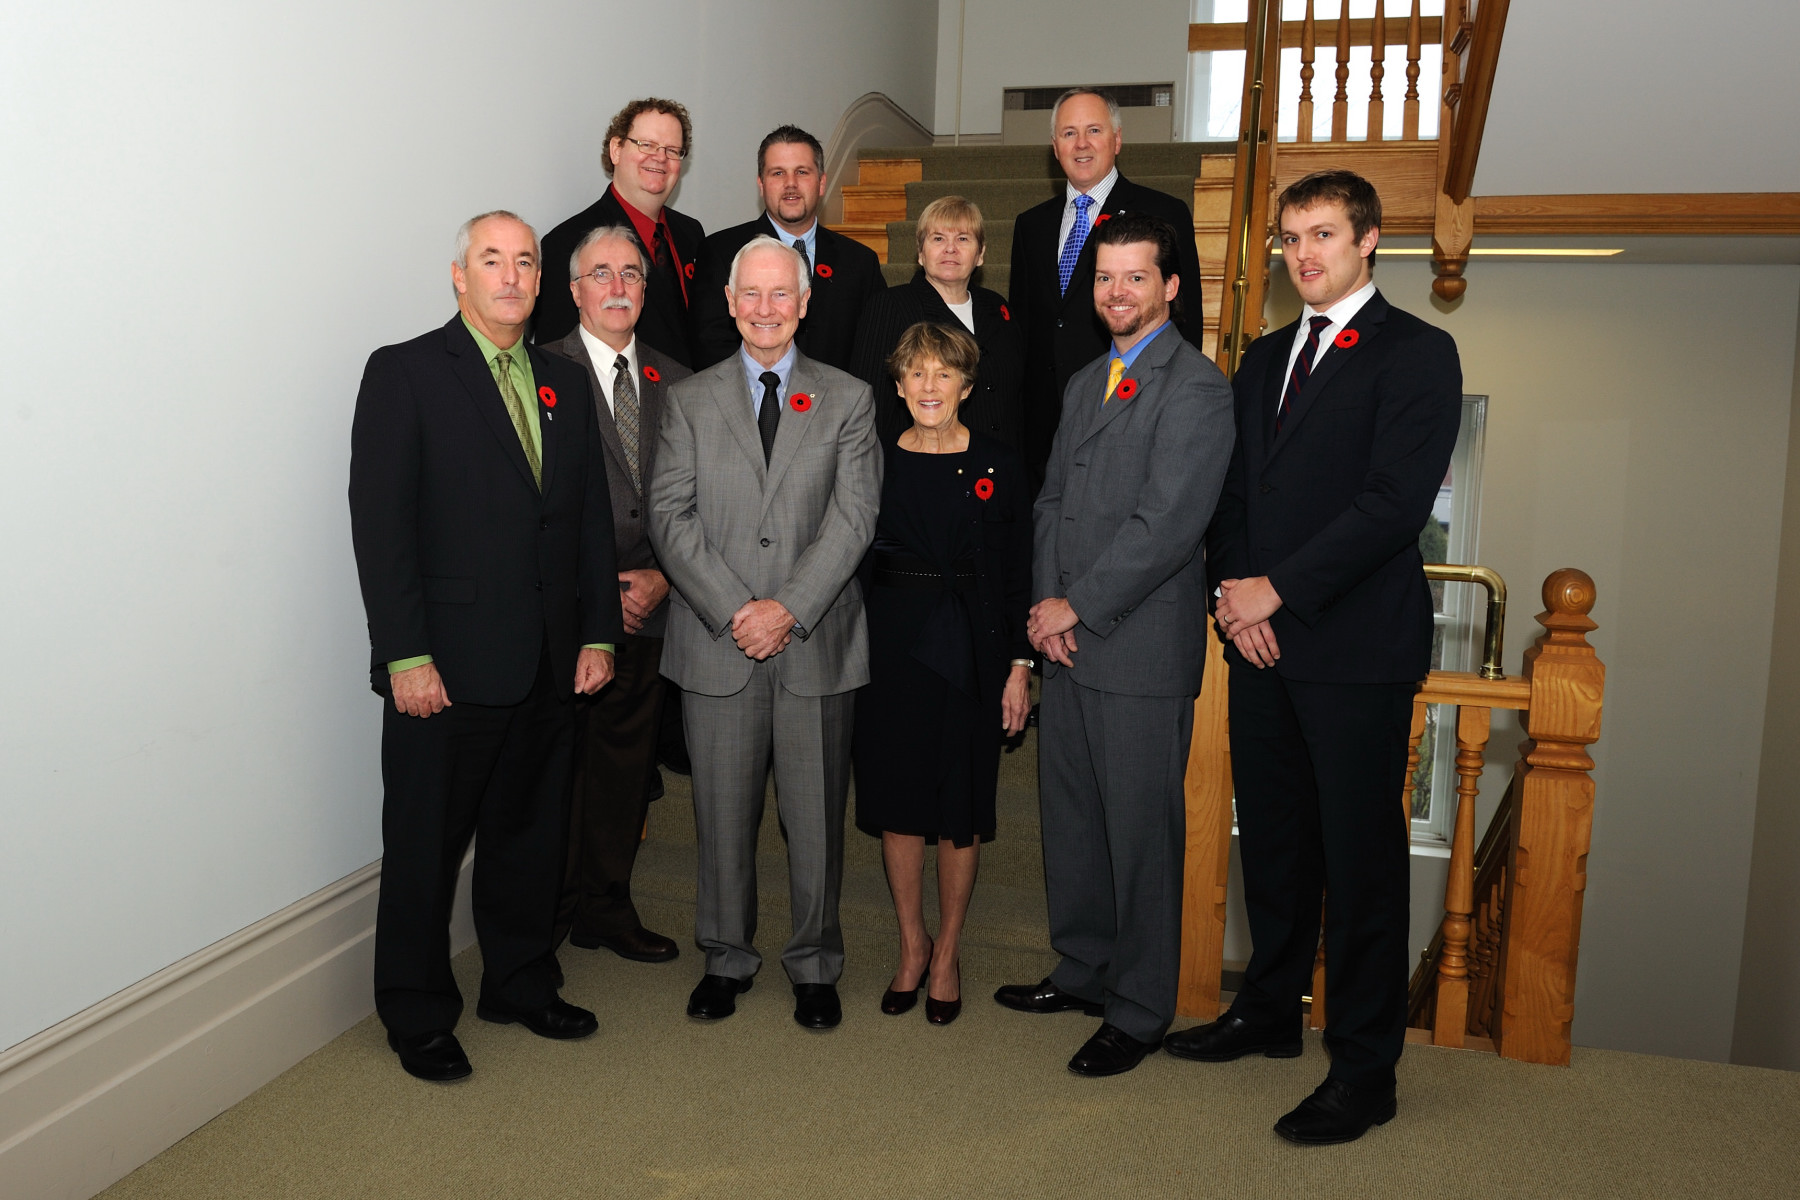 Official photo of Their Excellencies and staff from Fredericton City Hall.